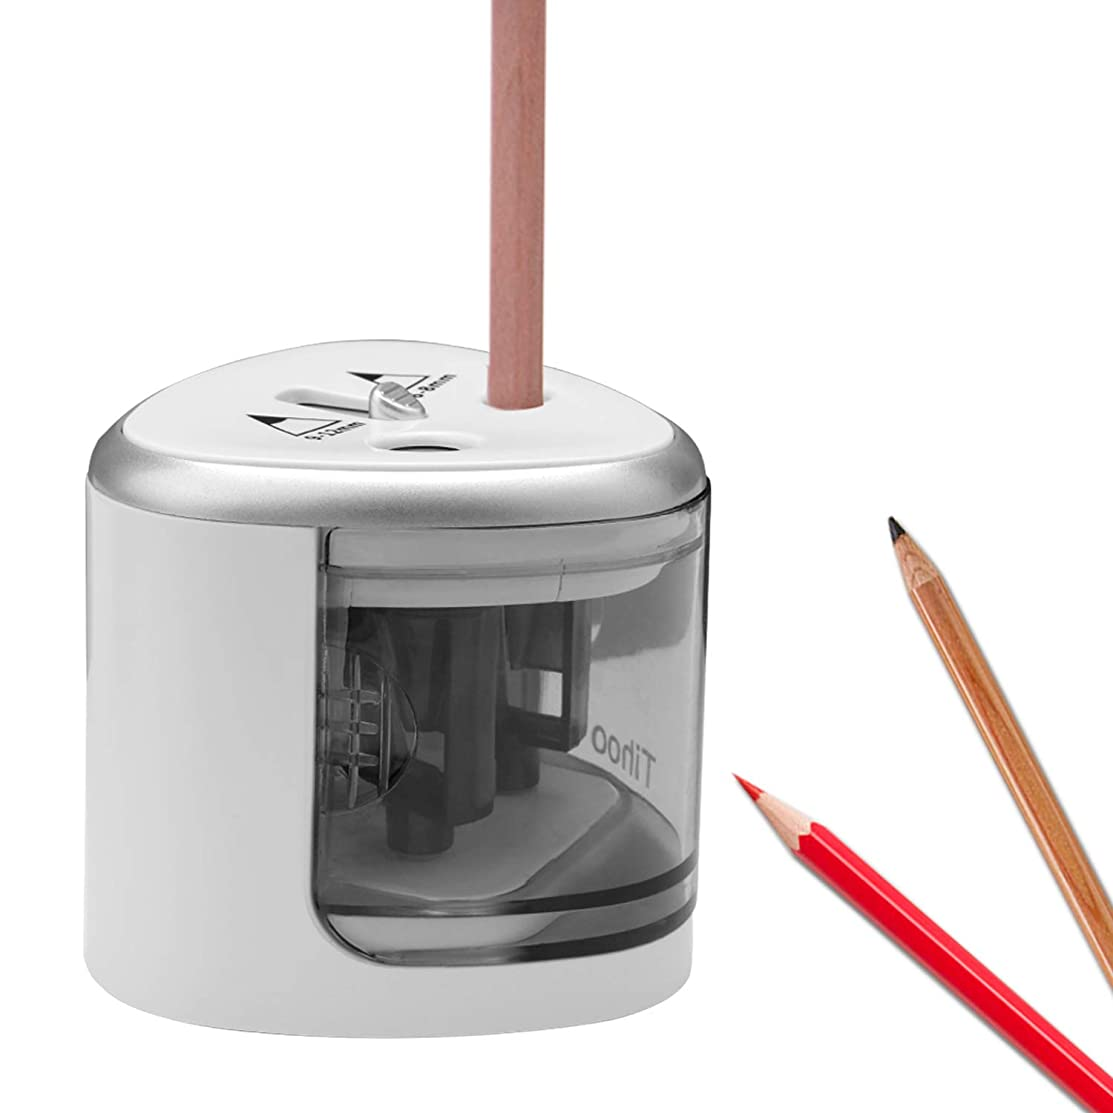 Zenic Electric Pencil Sharpener Automatic Pencil Cutter for Kids Adults Artist - Battery Operated, Safety for Kids, Portable for School, Office, Sketching from Nature